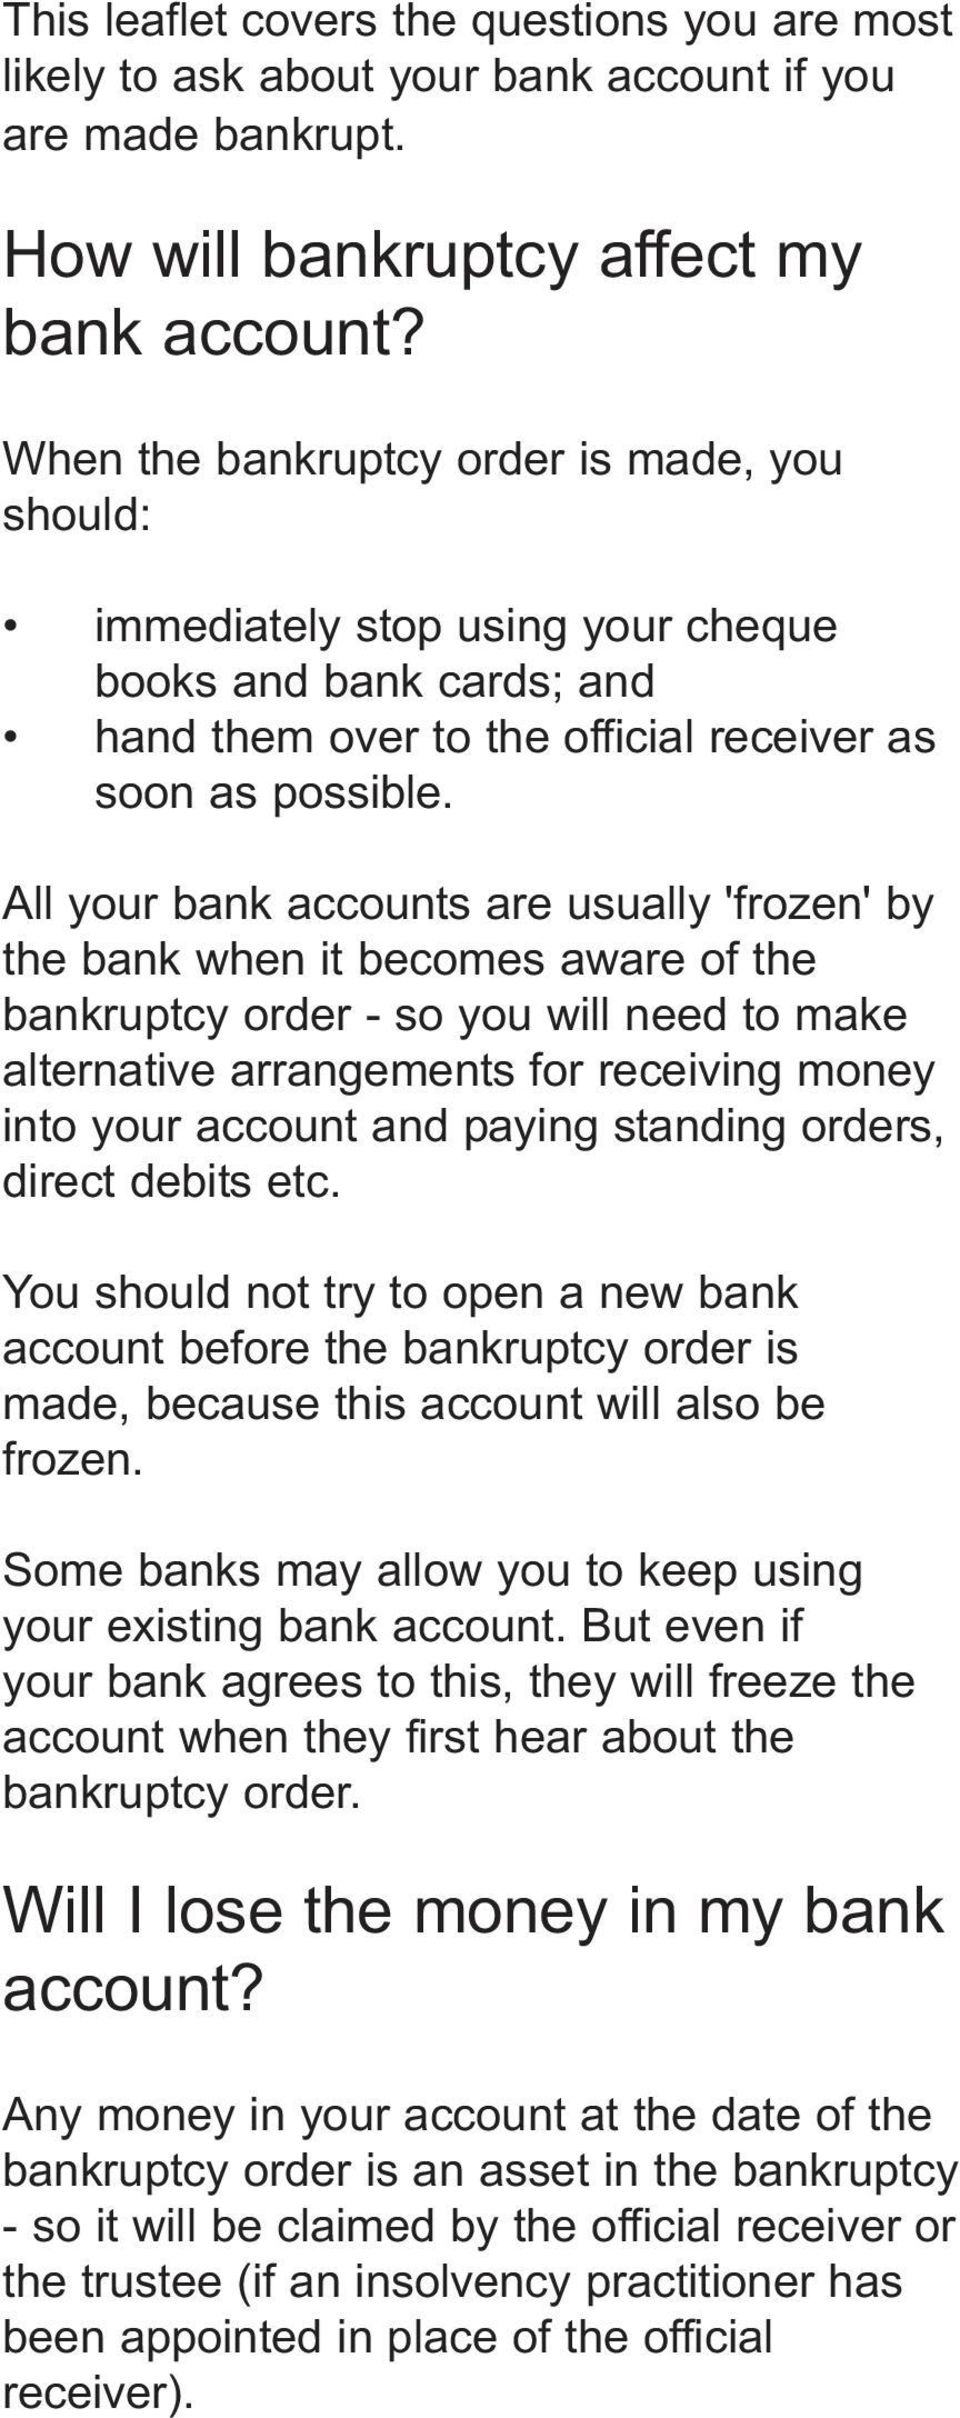 All your bank accounts are usually 'frozen' by the bank when it becomes aware of the bankruptcy order - so you will need to make alternative arrangements for receiving money into your account and